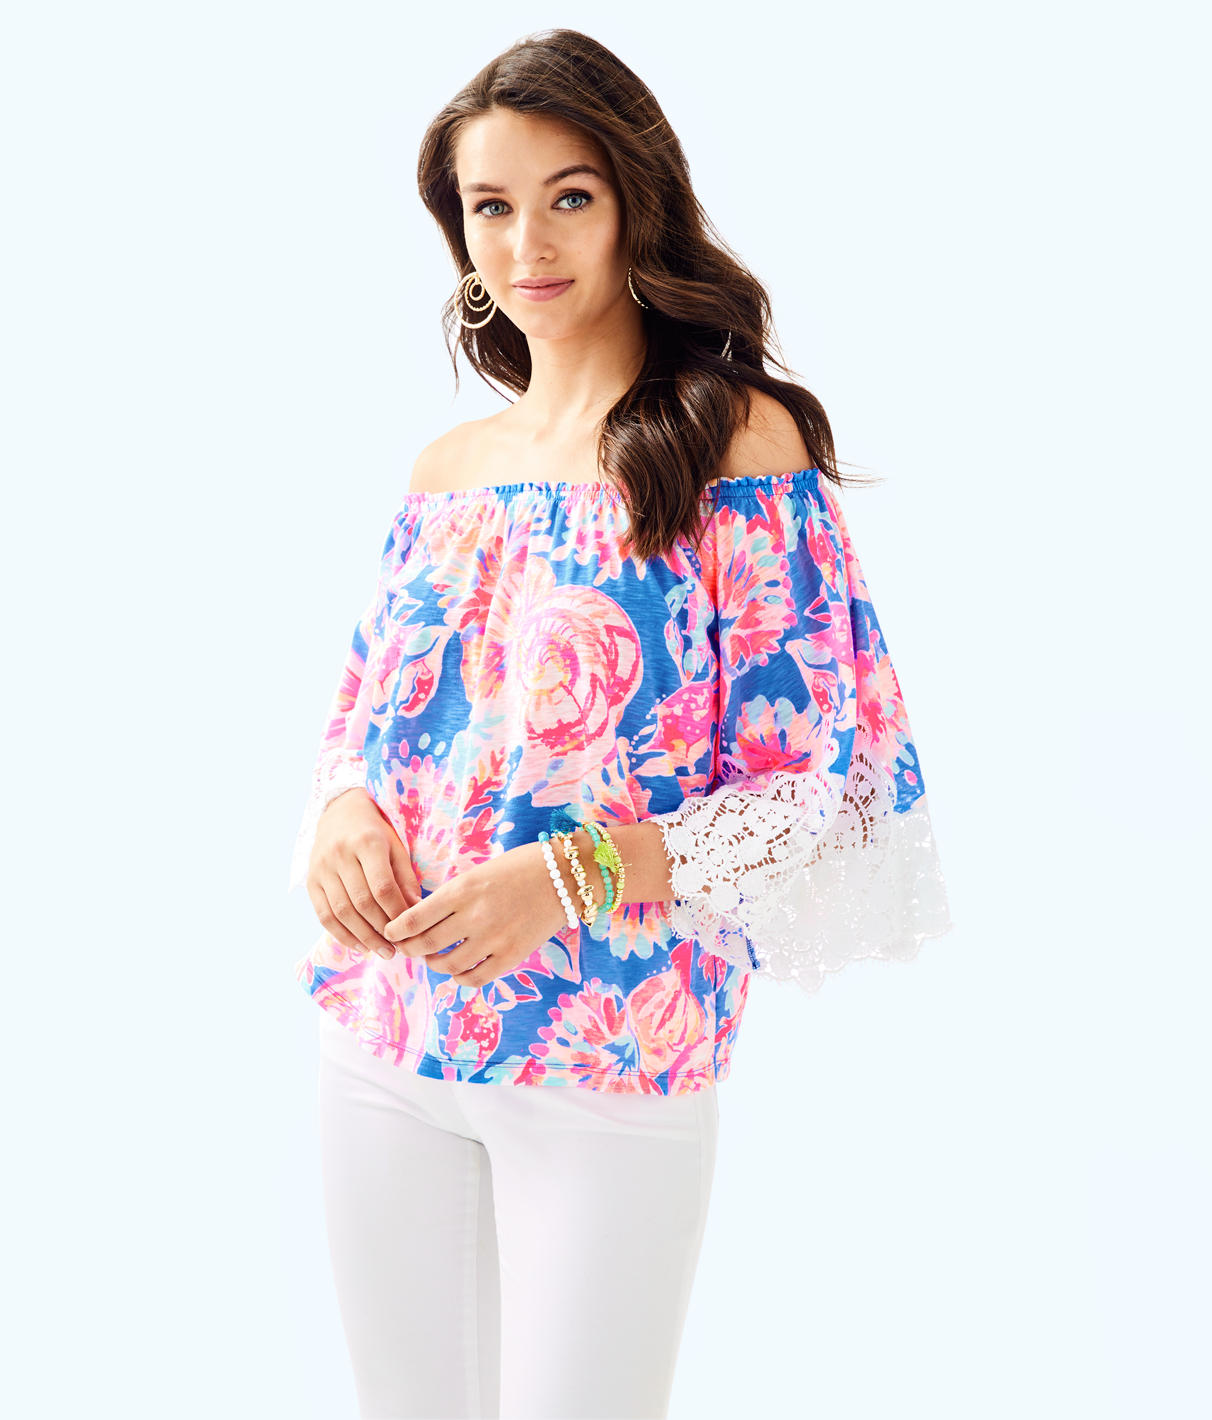 Lilly Pulitzer Lilly Pulitzer Womens Zaylee Top